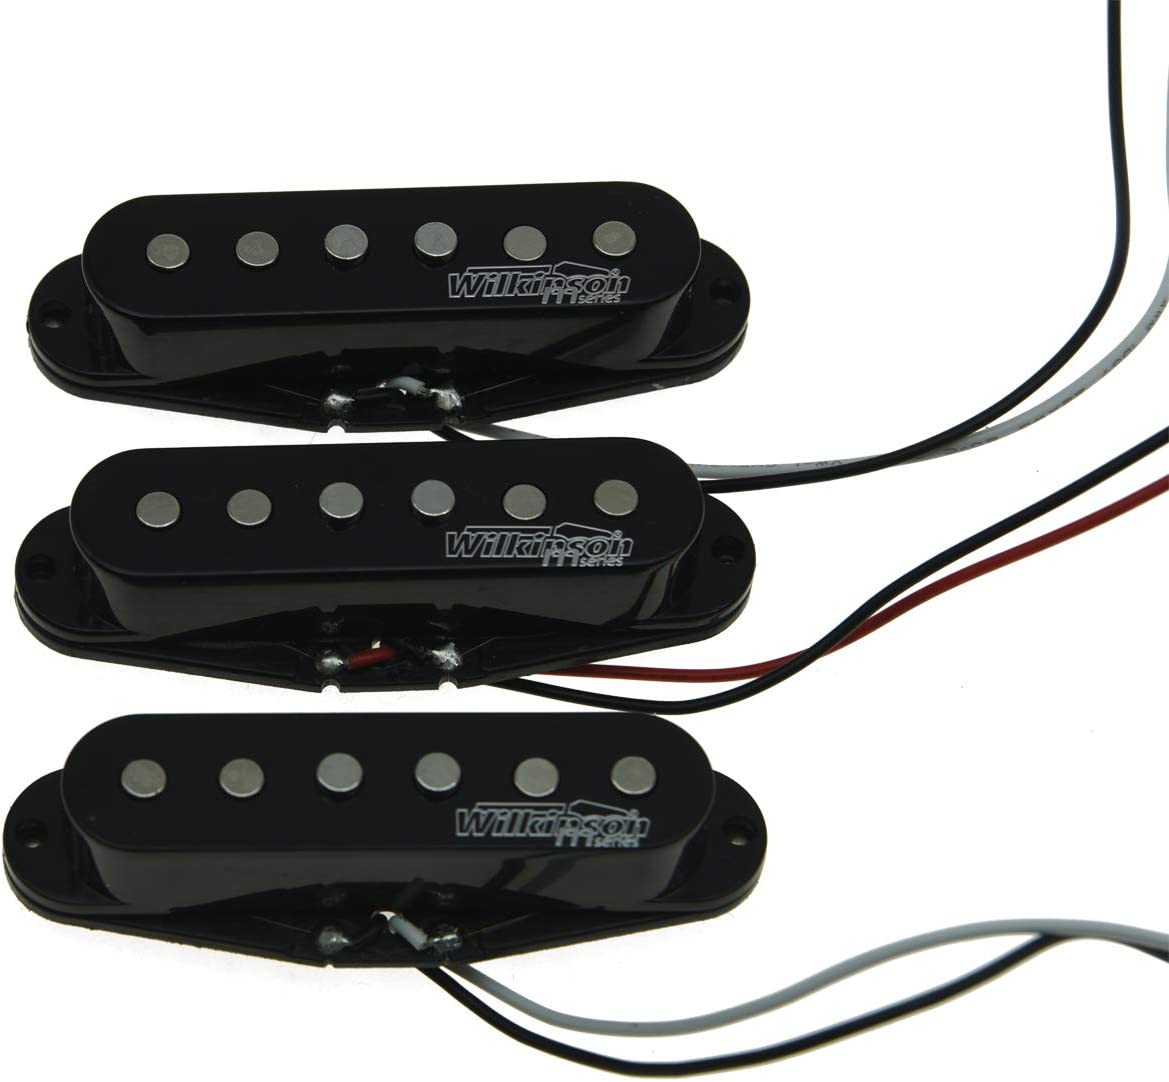 Wilkinson LIC Black ST Strat Vintage Voice Single Coil Pickups Fits Stratocaster